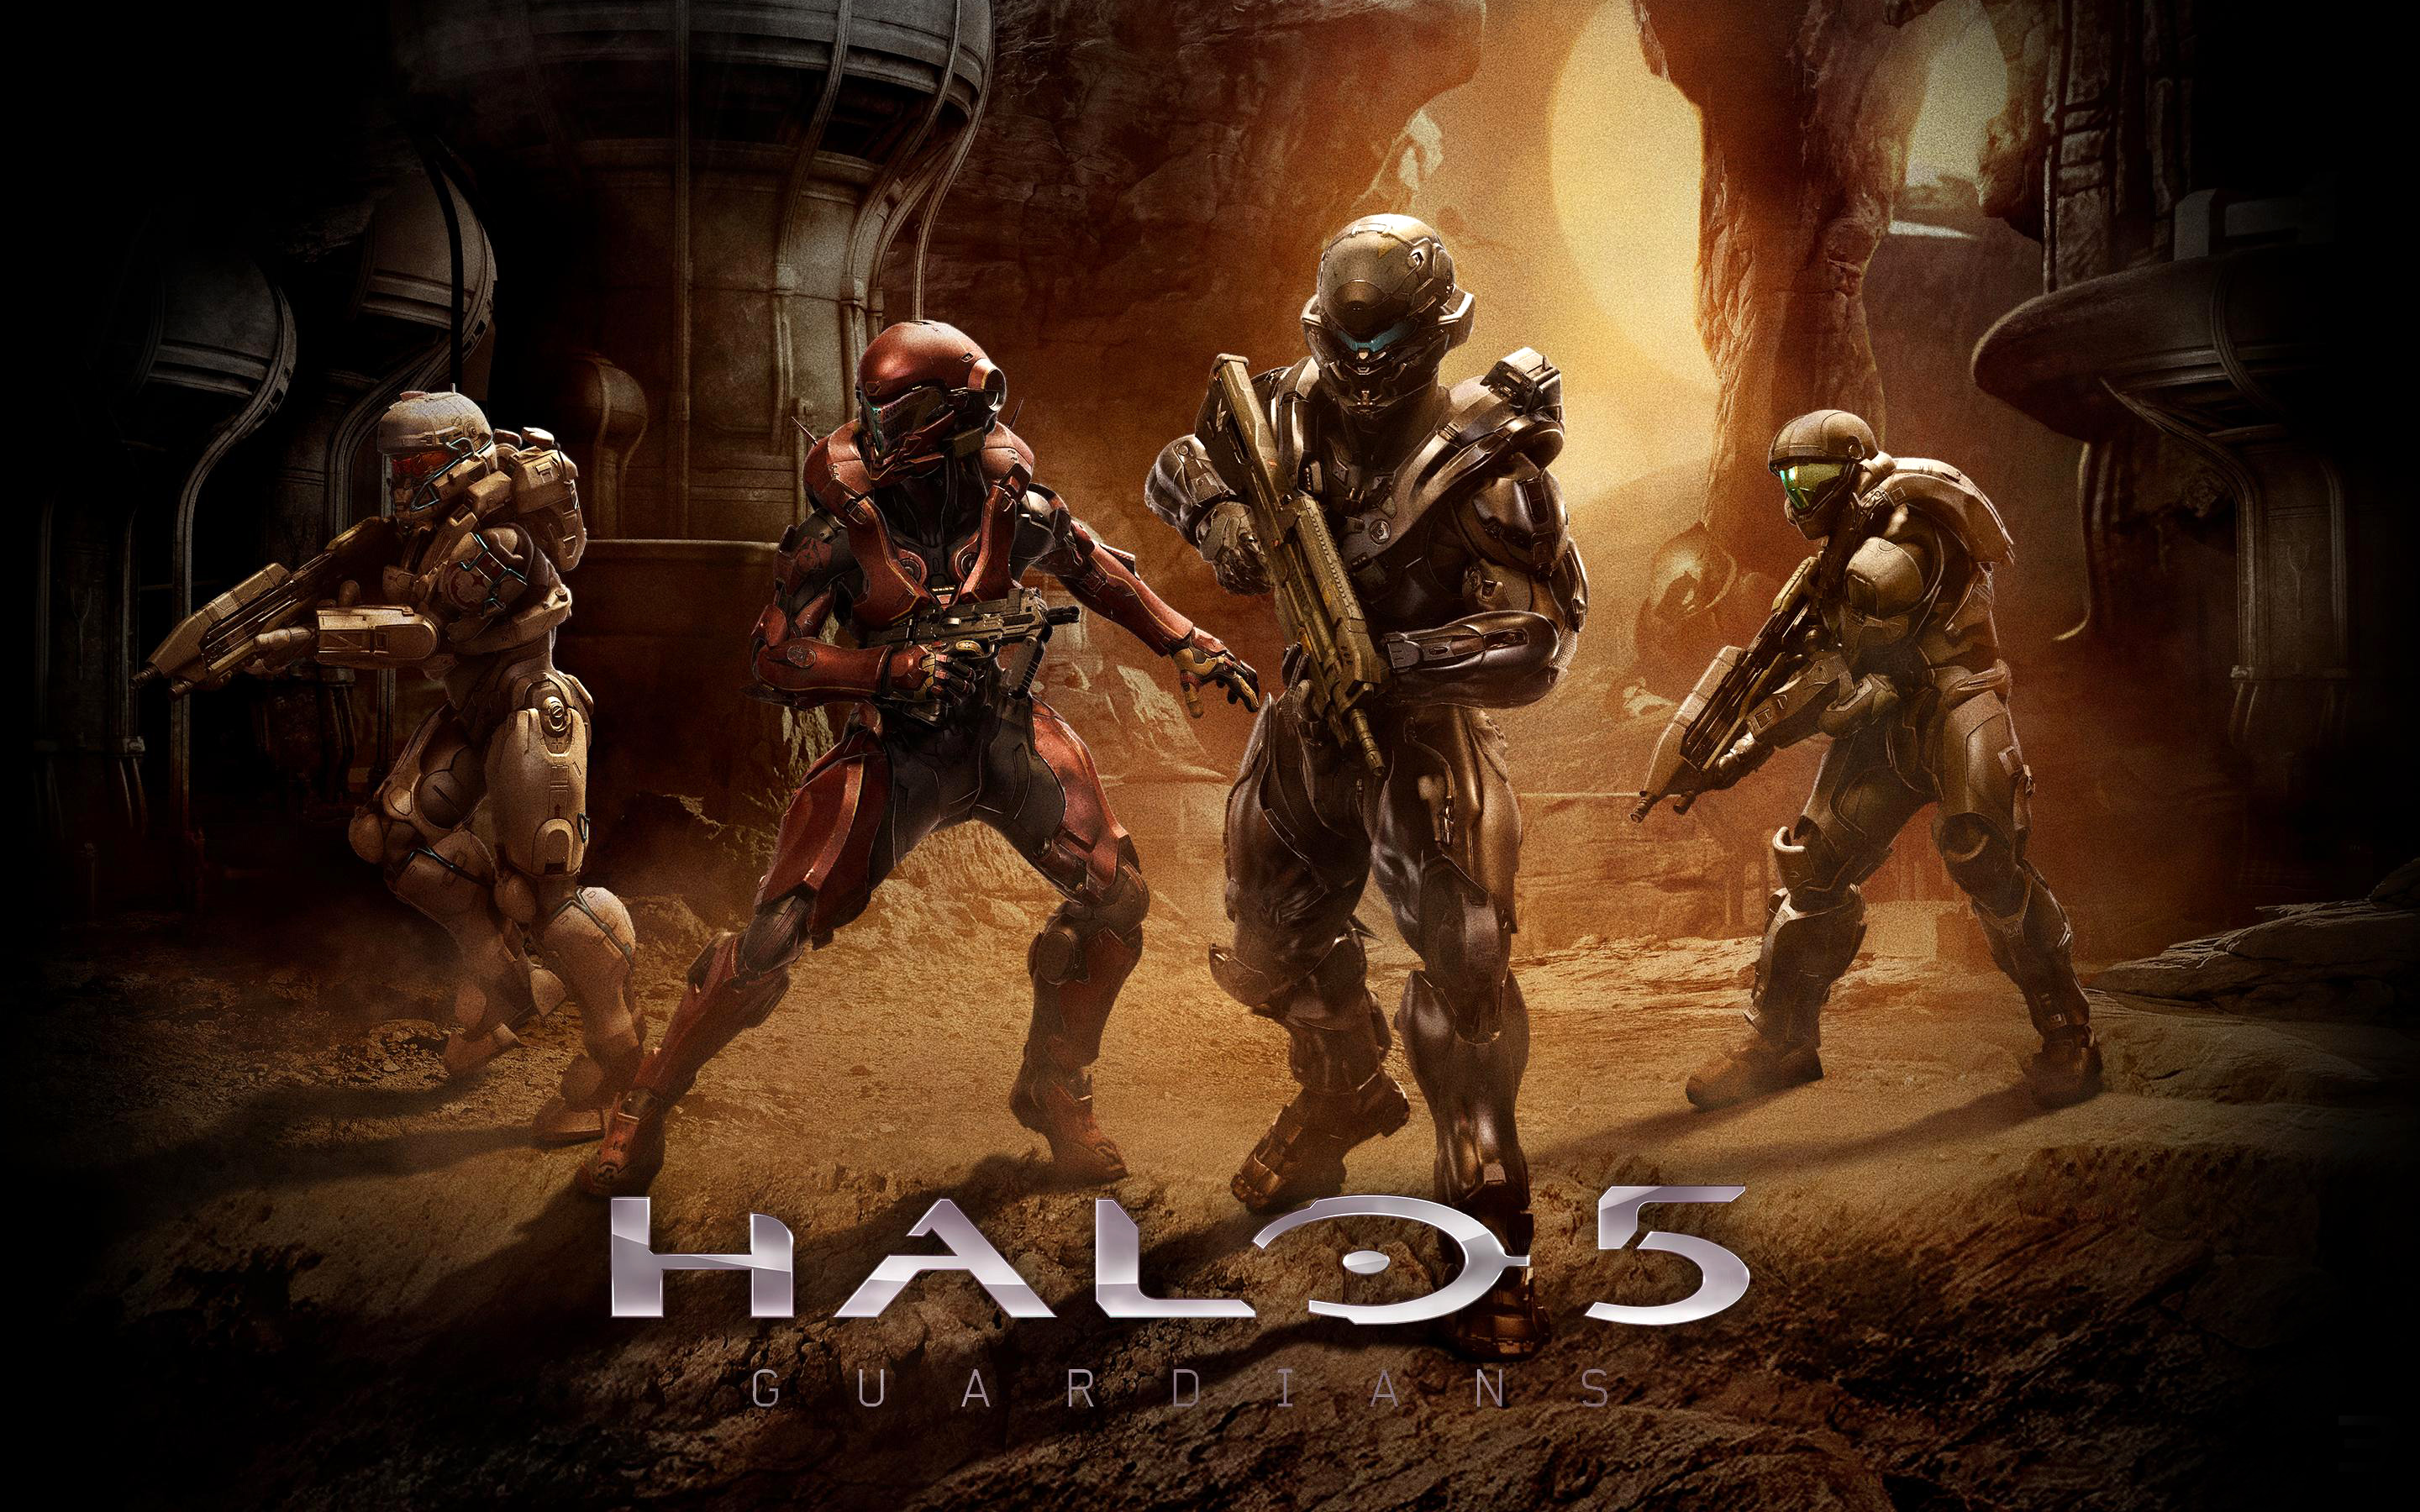 Halo 5: Guardians HD Wallpaper   Background Image   2880x1800   ID:615266 - Wallpaper Abyss